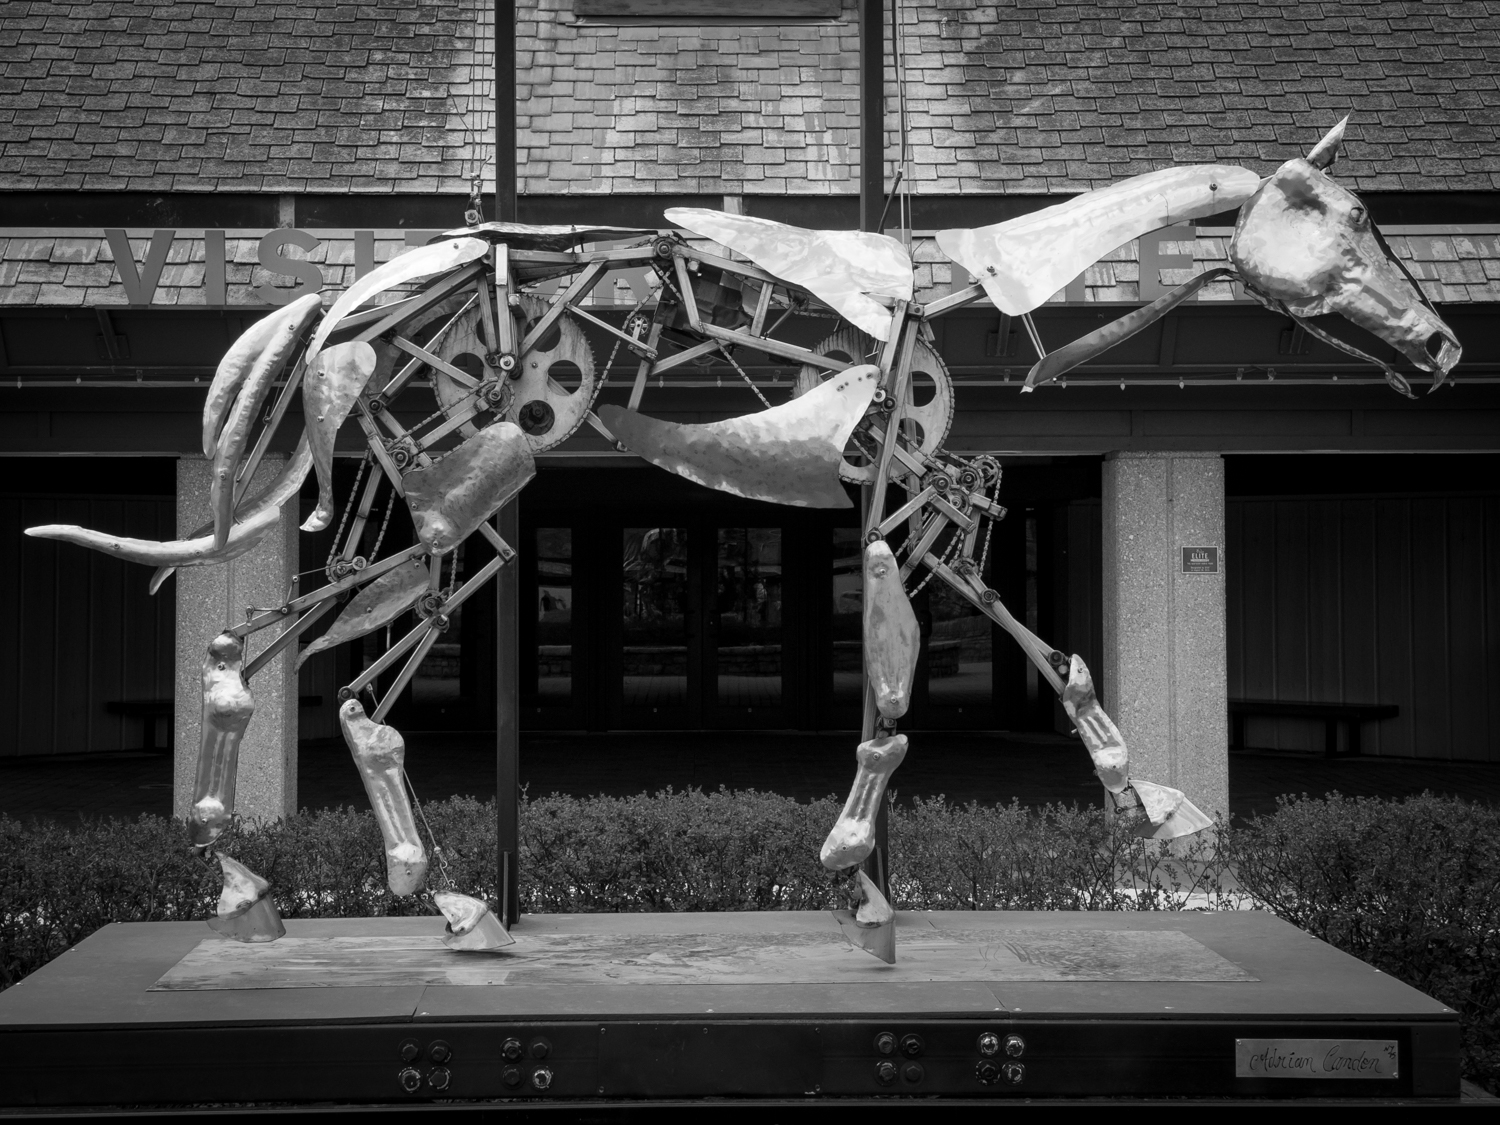 Mechanical horse at the entrance to the Visitor Center at the Kentucky Horse Park, Lexington, Kentucky